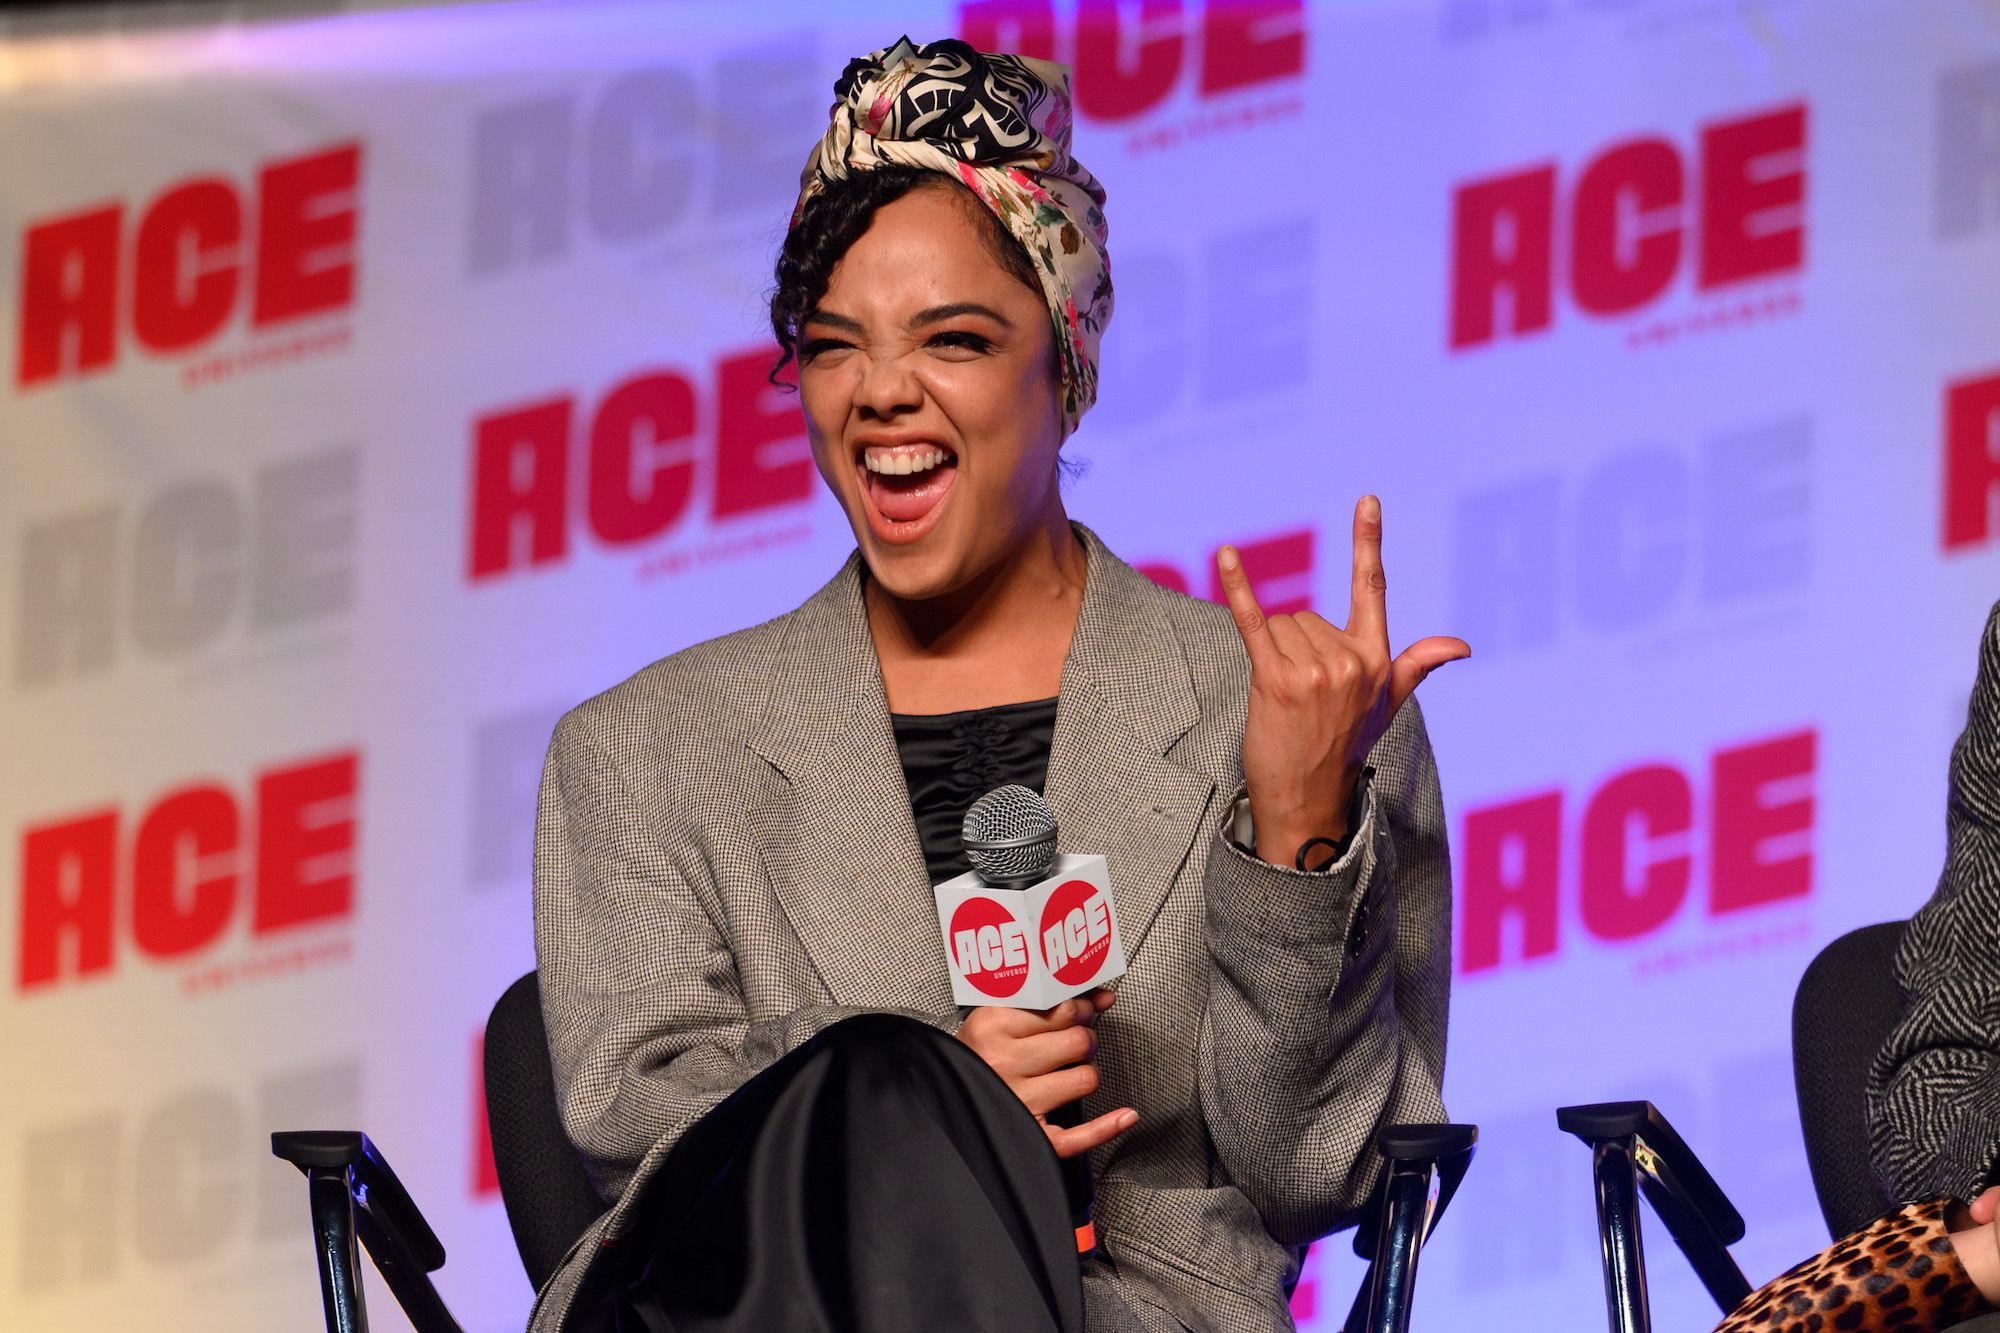 Creed 3 es Posible Según Tessa Thompson - Creed III Rocky